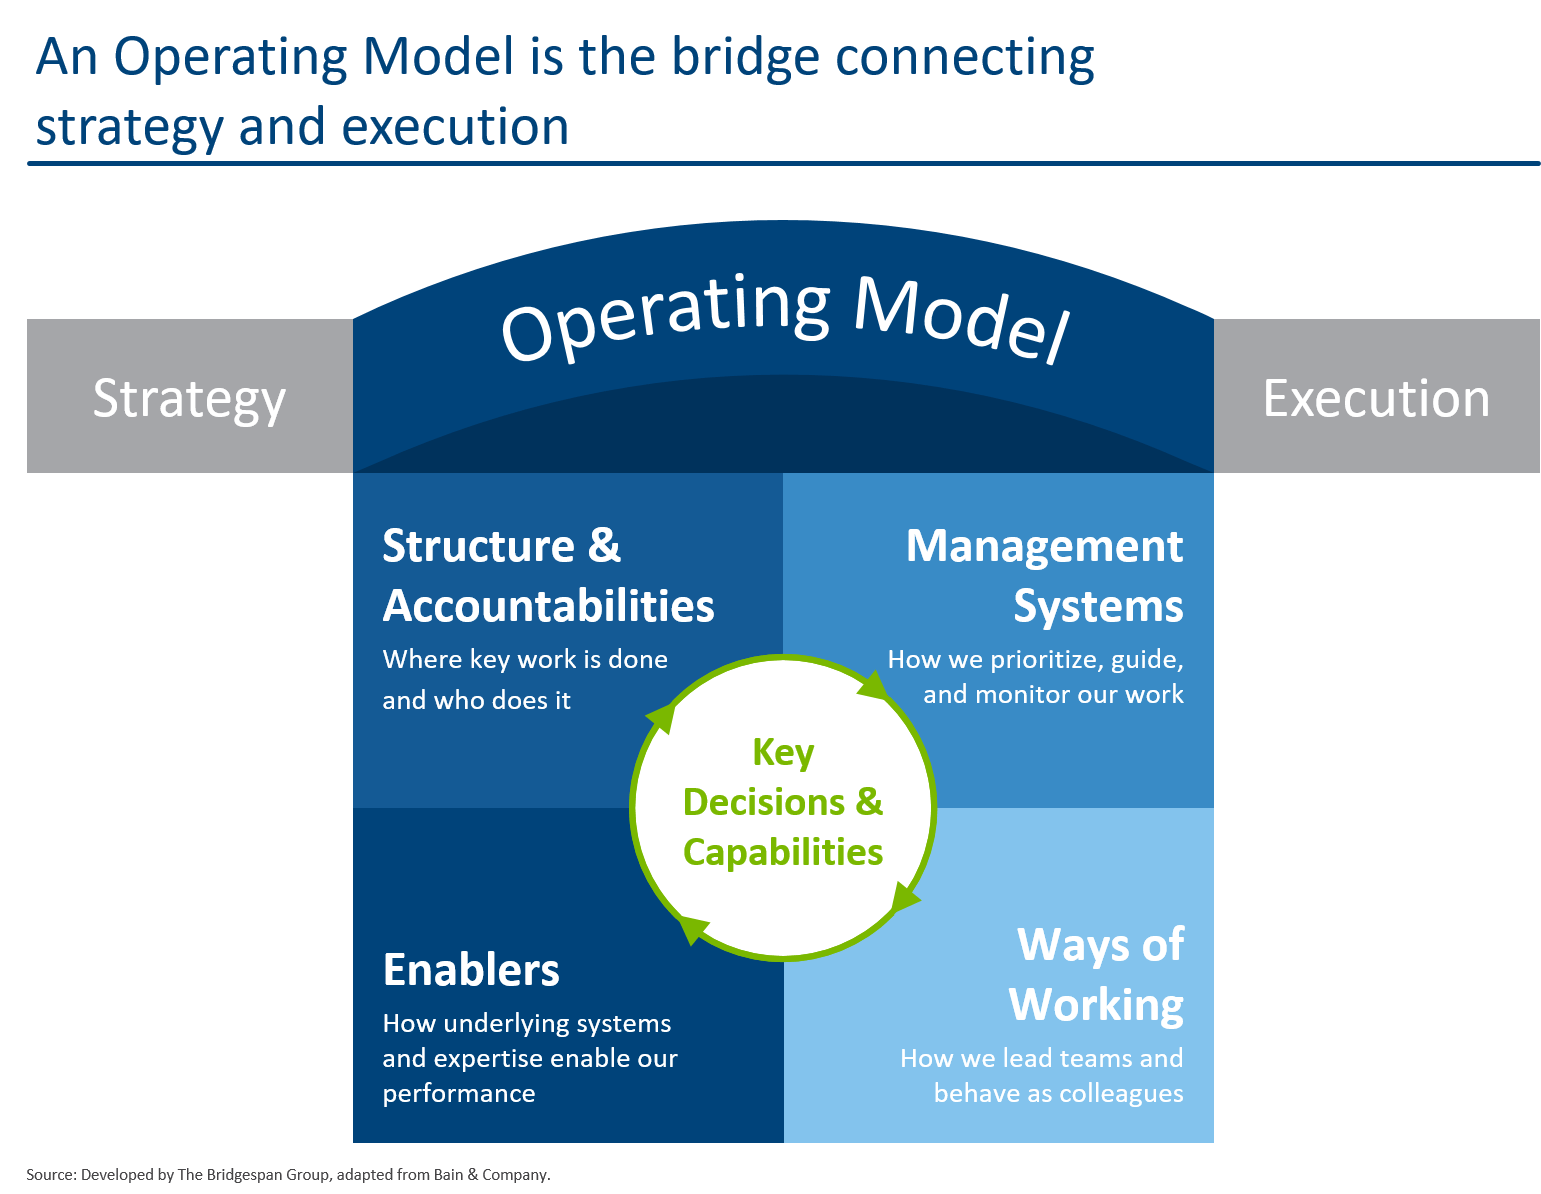 An Operating Model is the bridge connecting strategy and execution